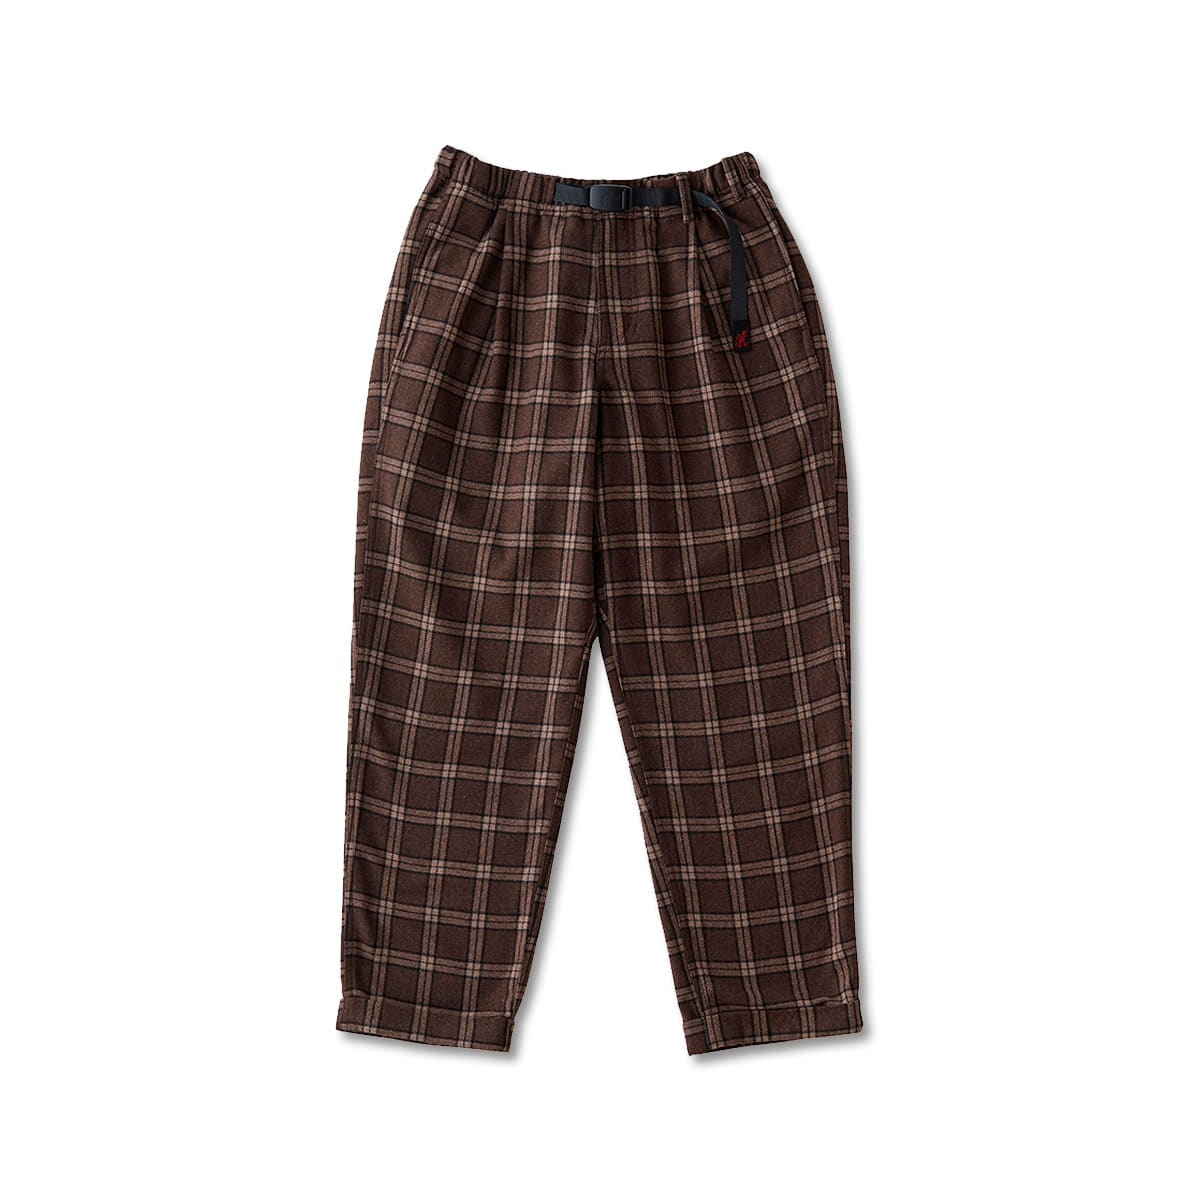 [GRAMICCI] WOOL BLEND TUCK TAPERED PANTS 'BROWN CHECK'